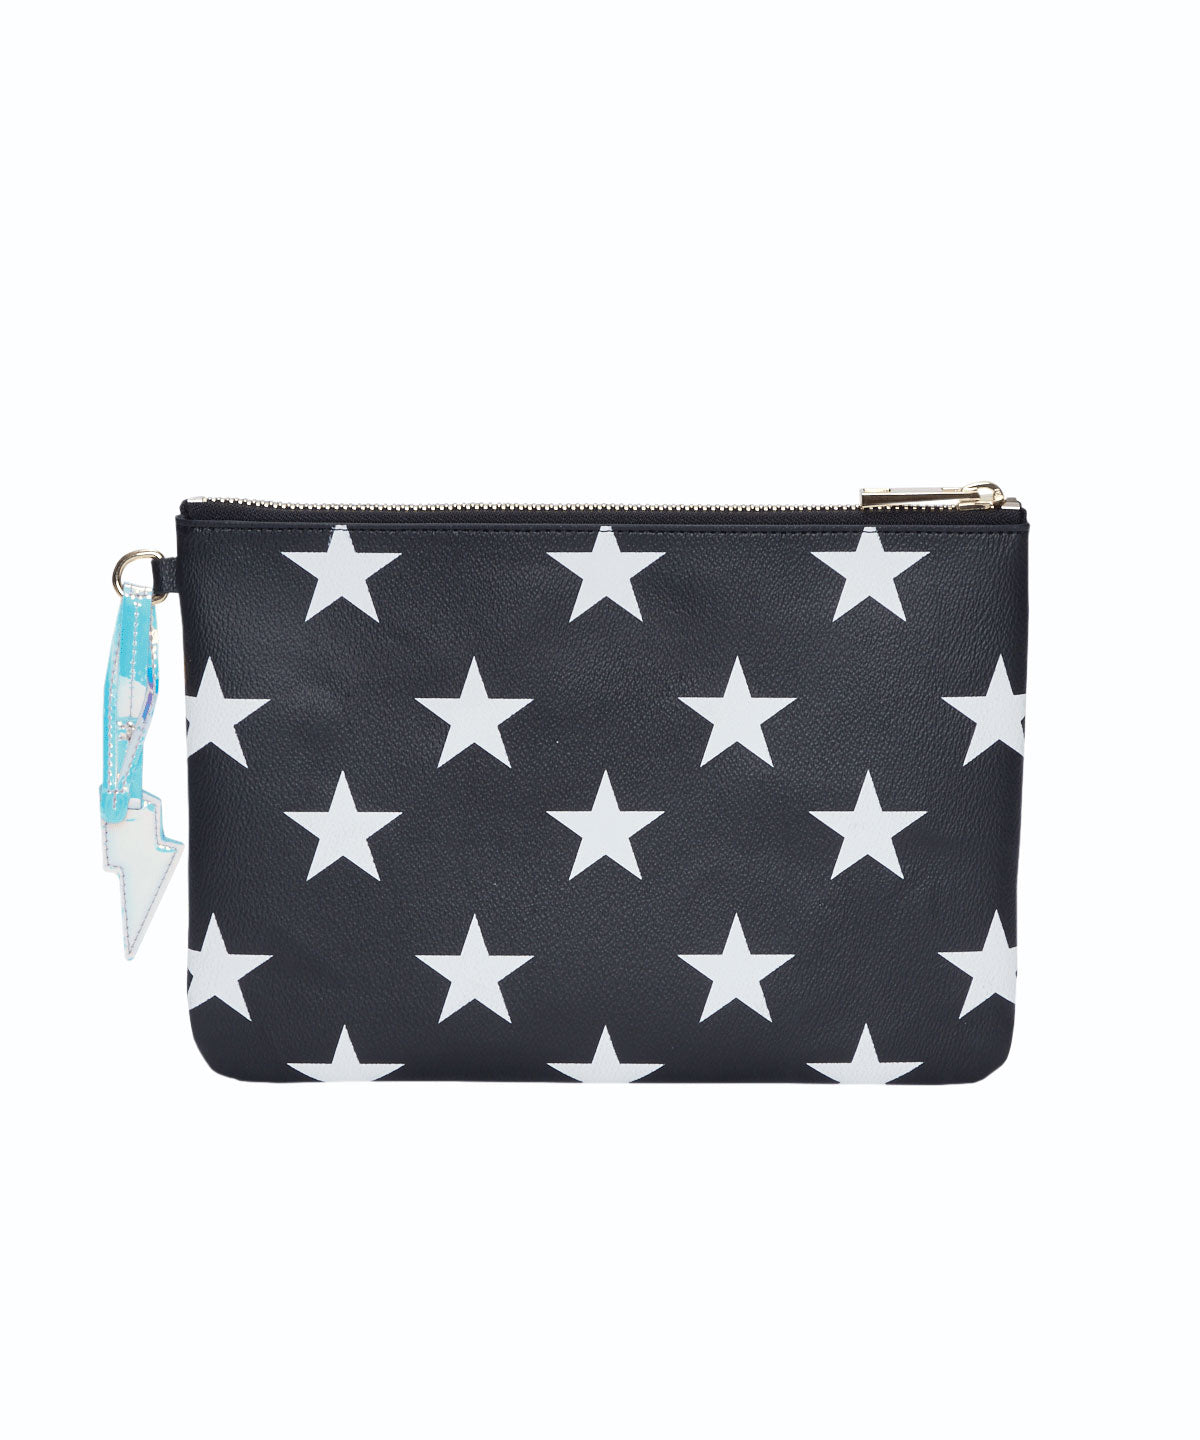 Exclusive Star Print Lightning Bolt Charm Flat Pouch